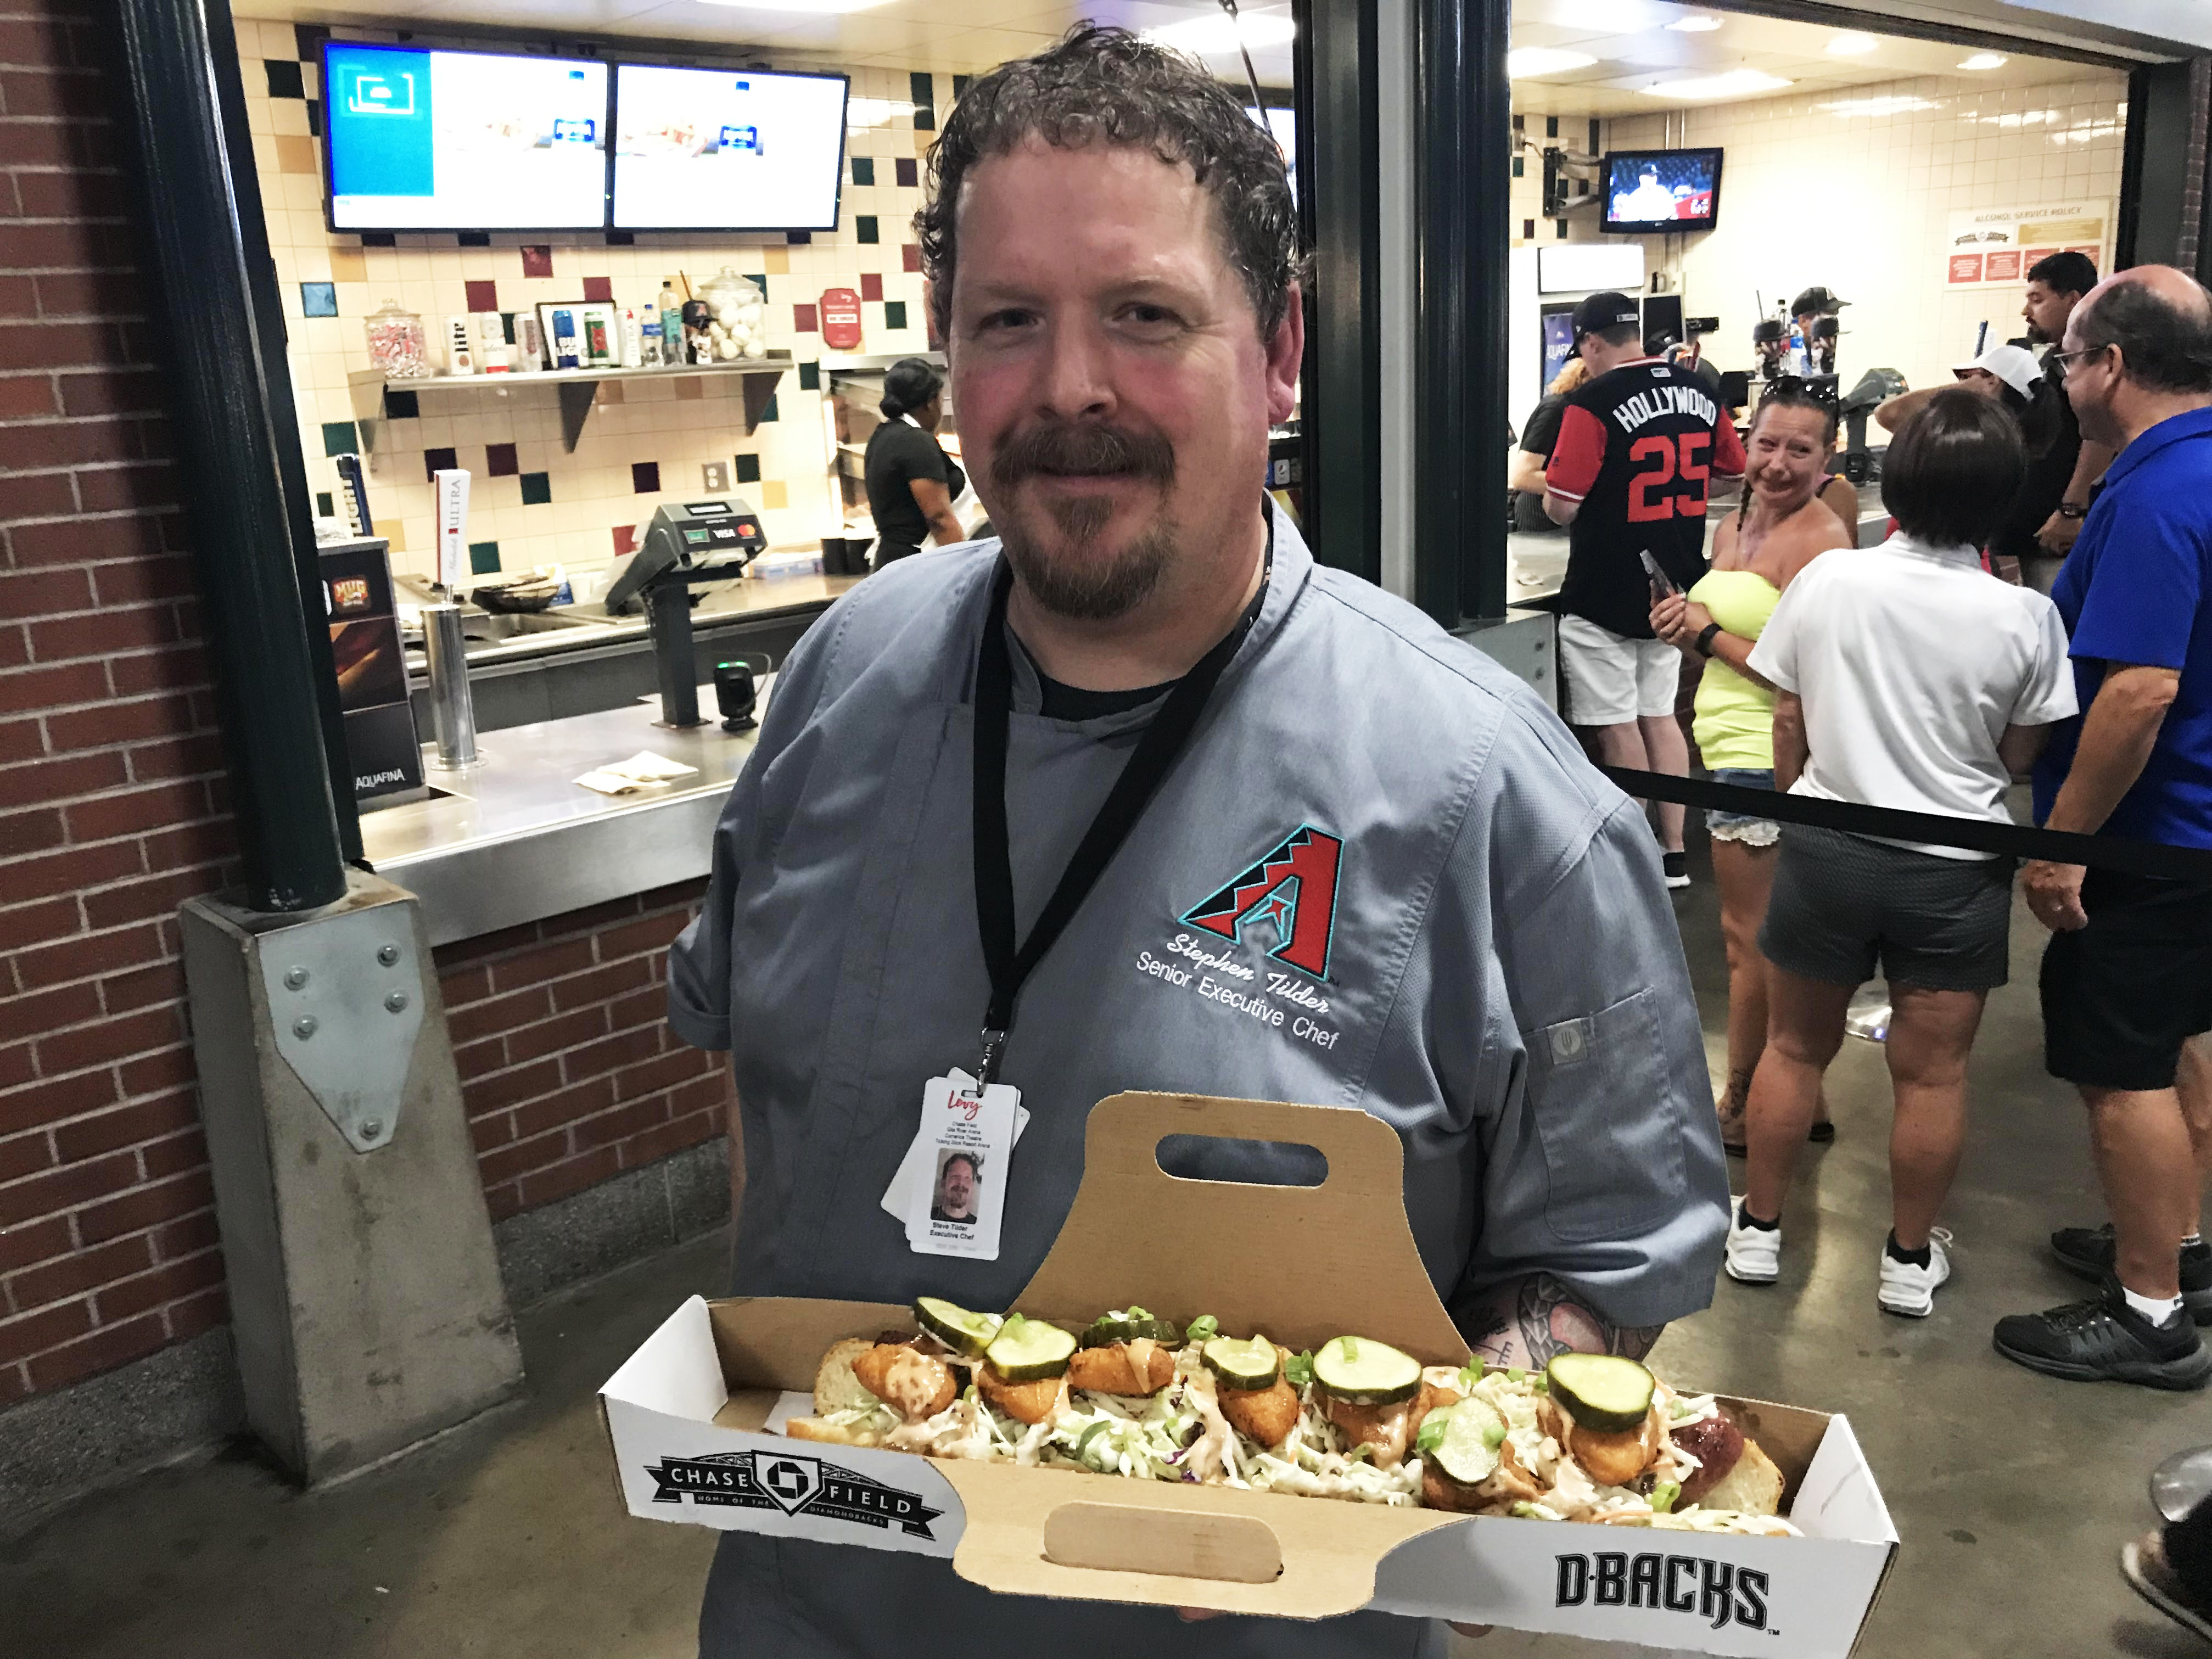 For Arizona Baseball Fans, A Stadium Bratwurst Meant To 'Blow Their Mind'